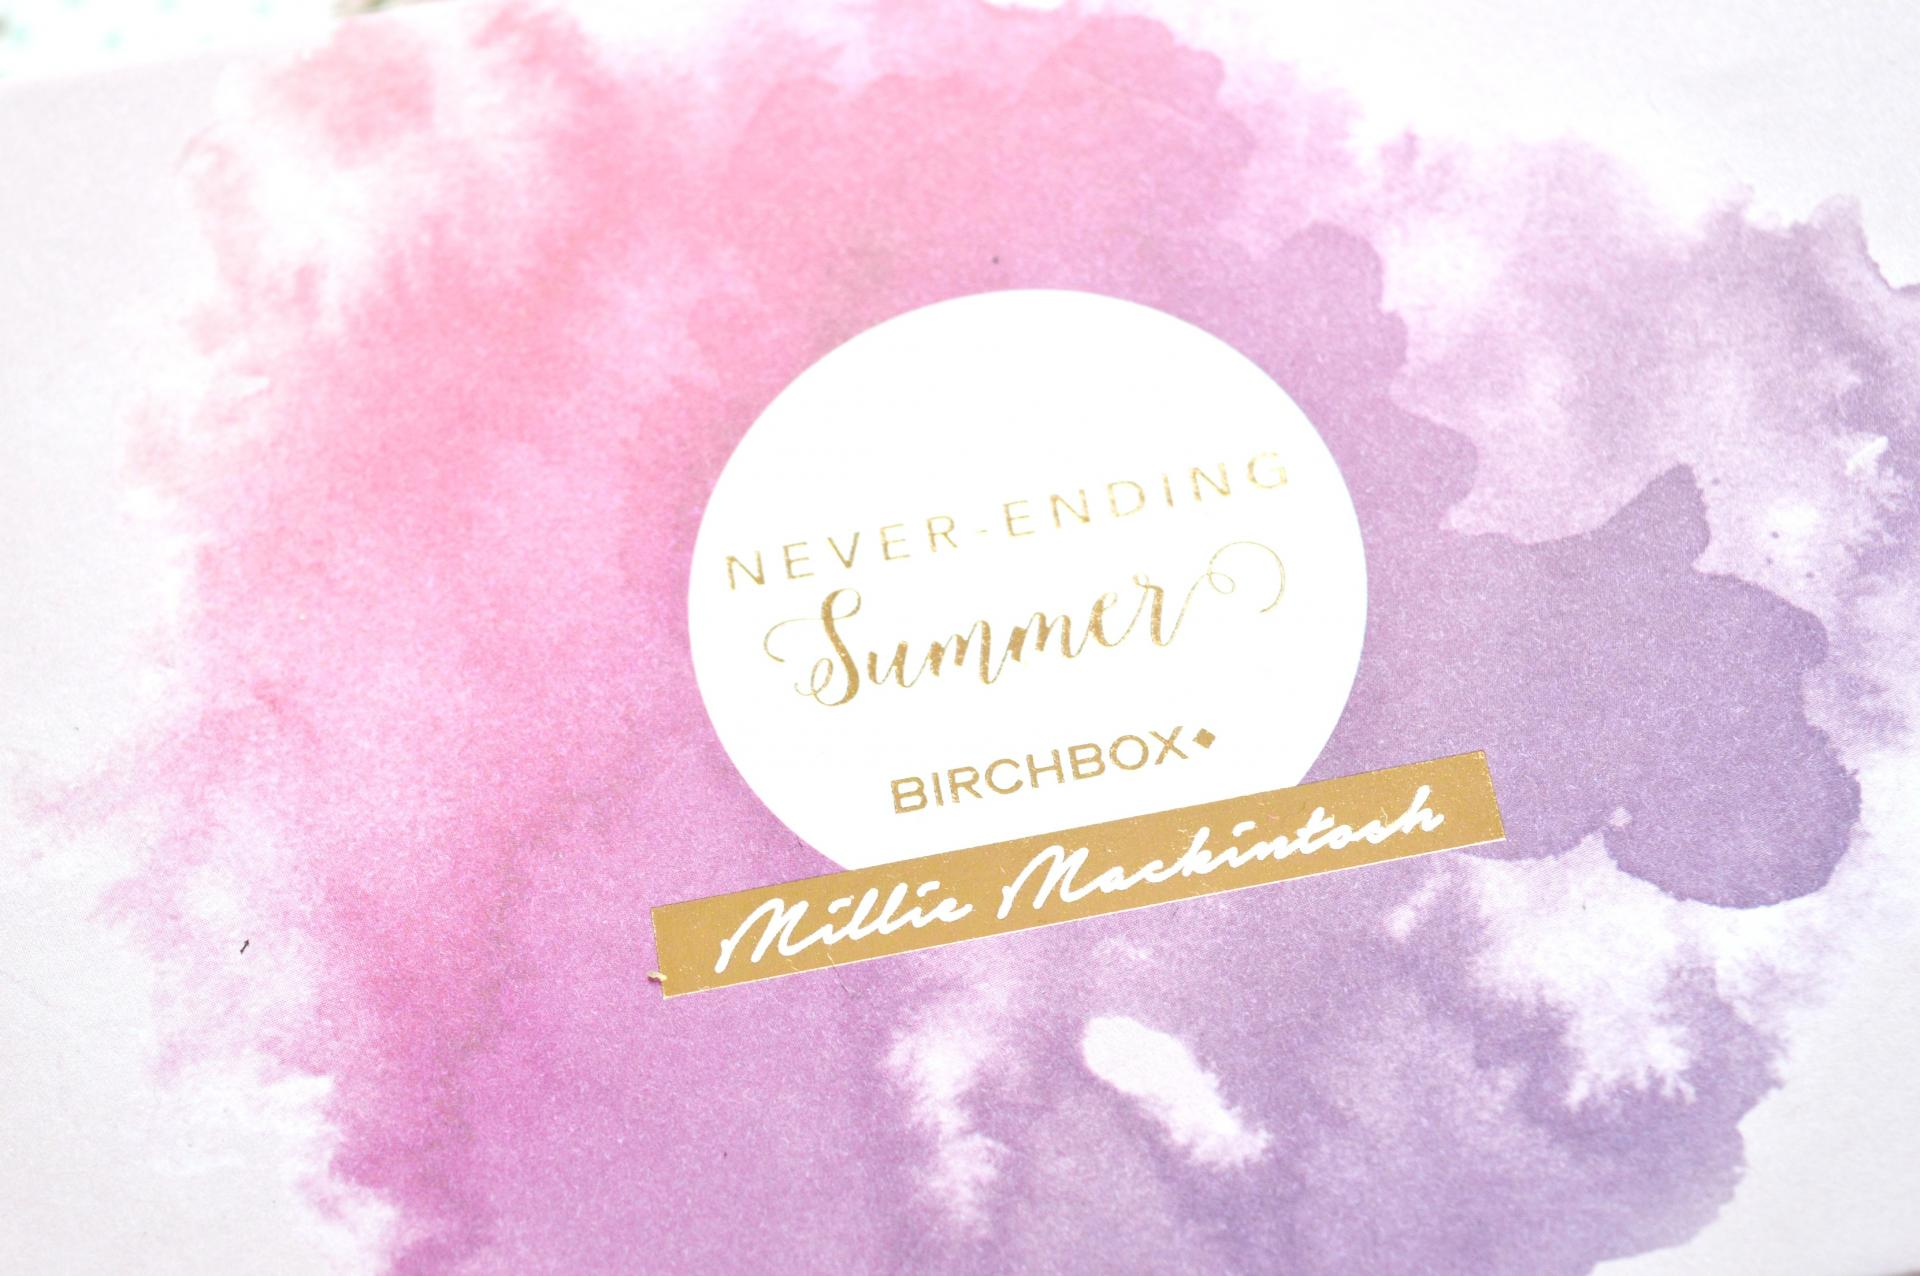 Birchbox July 2016 | Never-Ending Summer